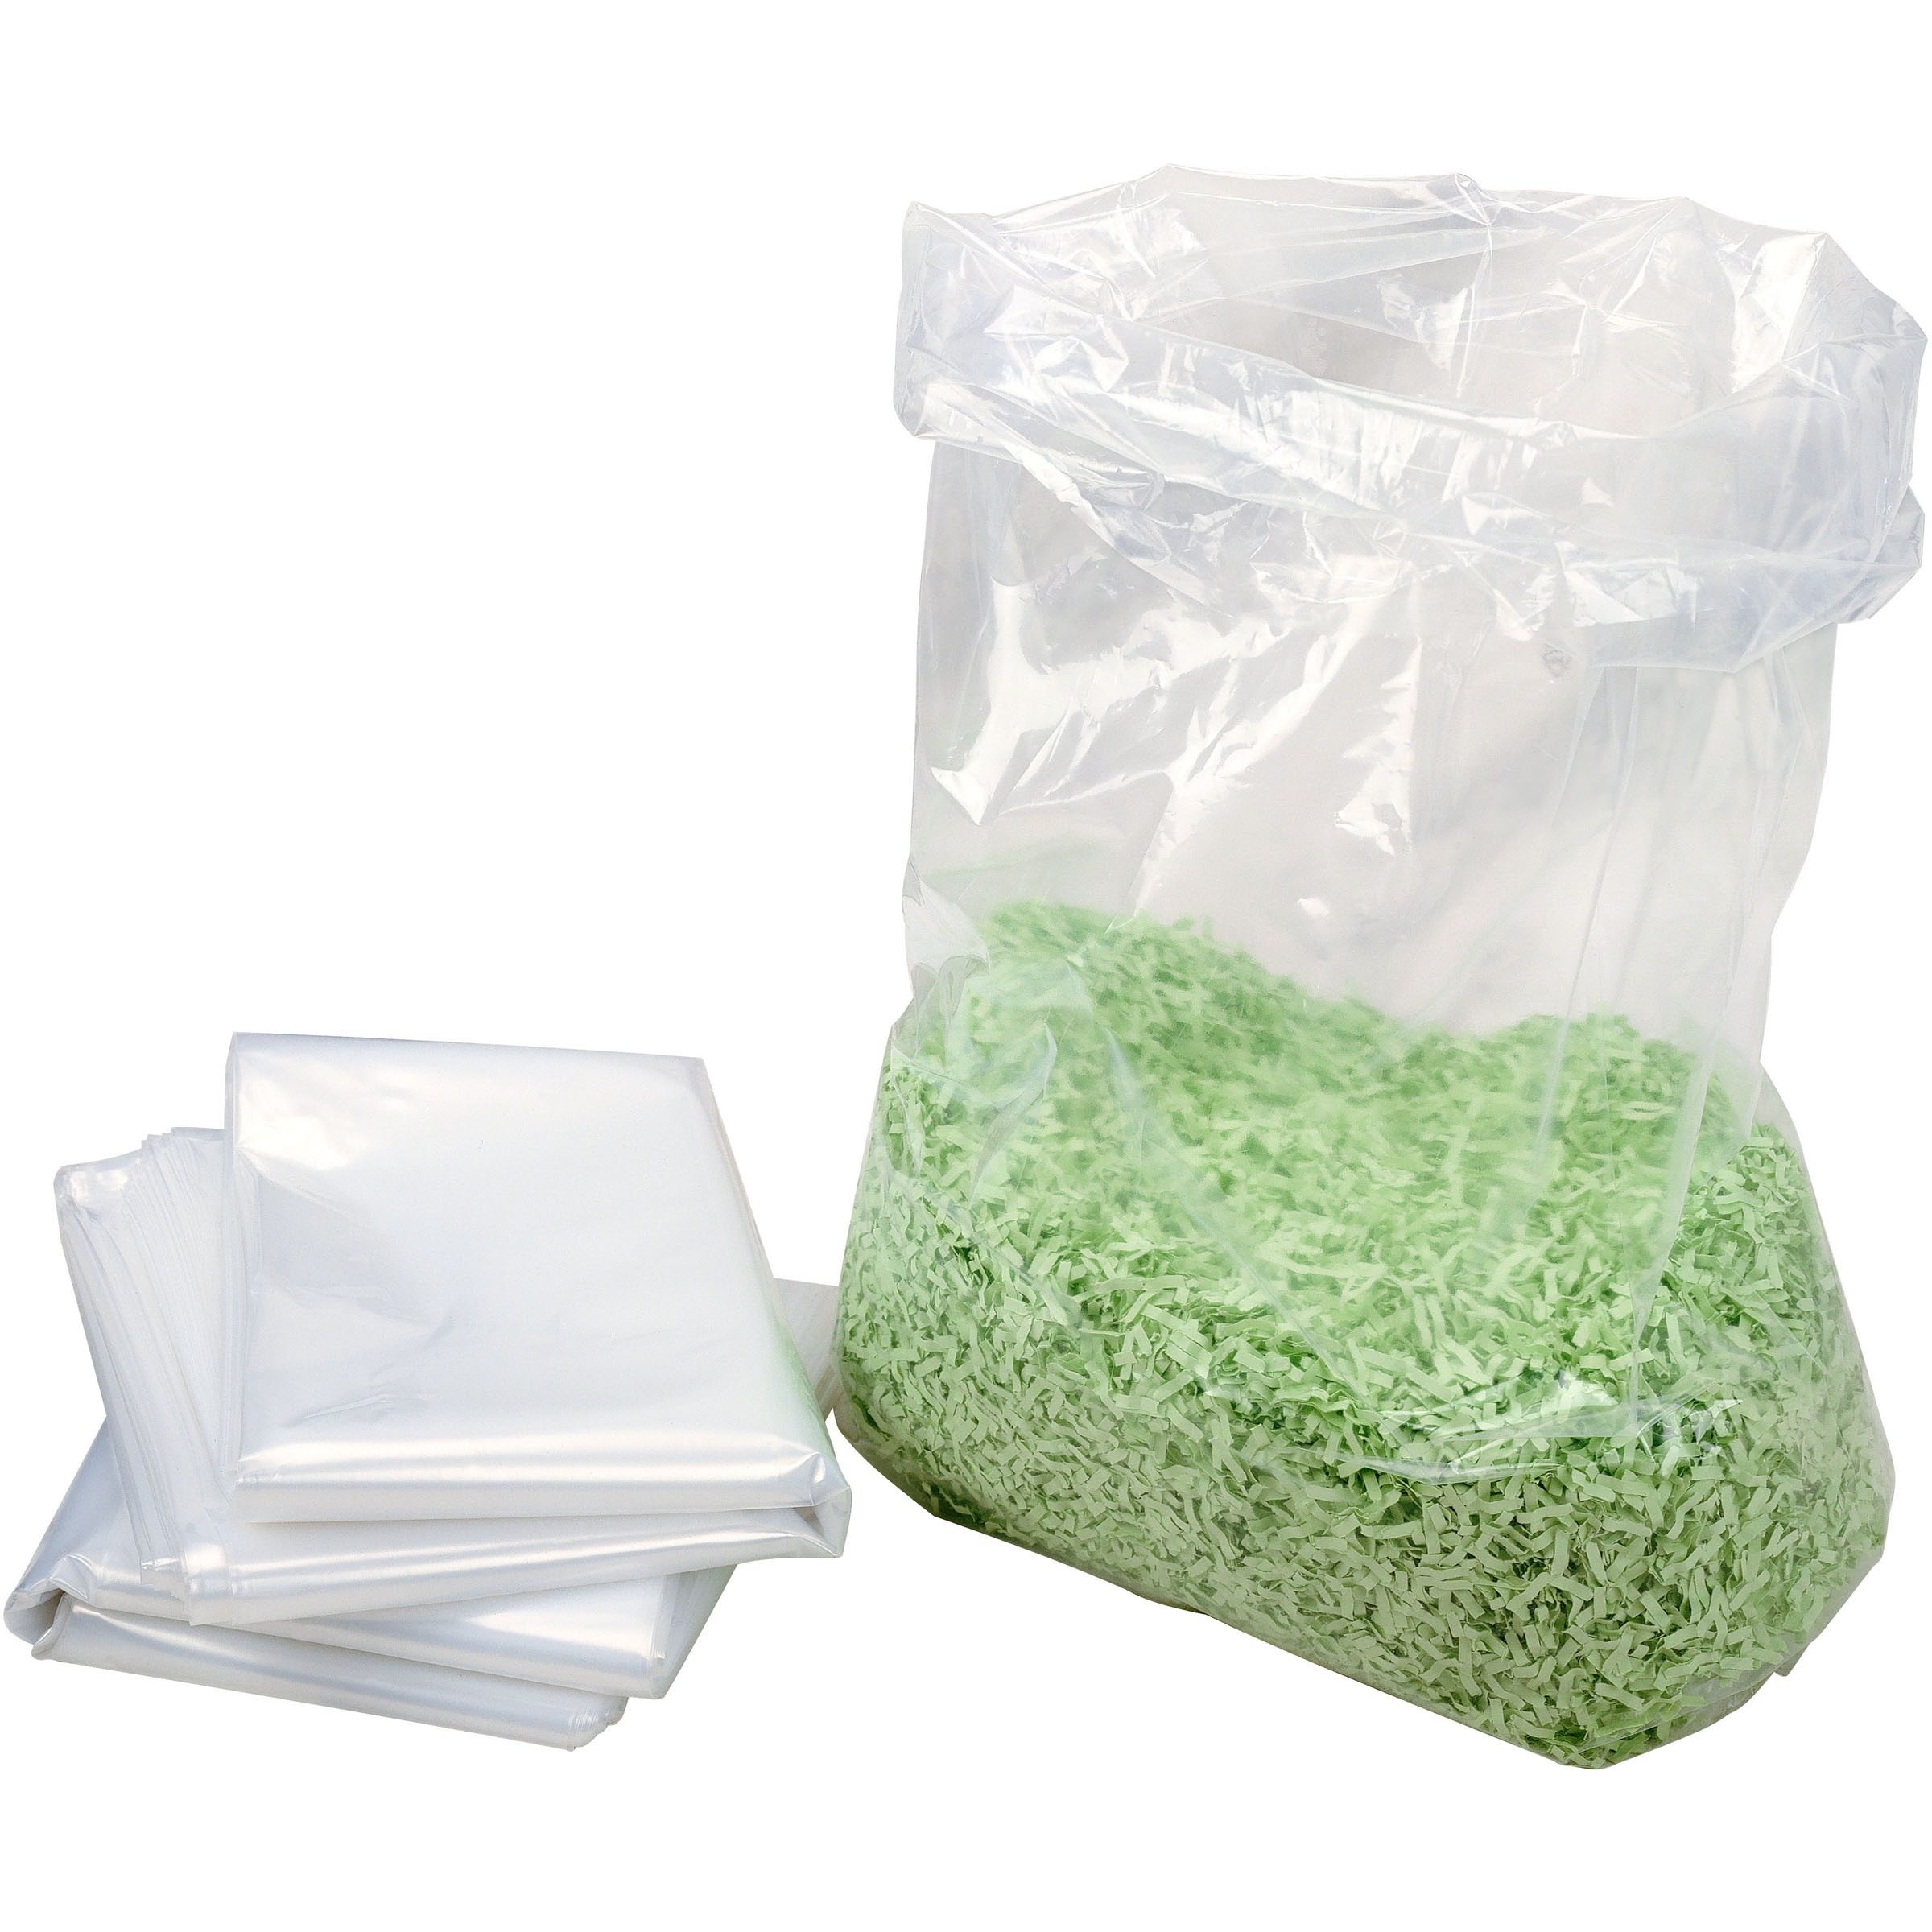 HSM Shredder Bags - fits Classic 108, SECURIO B24, AF150, AF300 Models, Clear, 100 / Carton (Quantity)